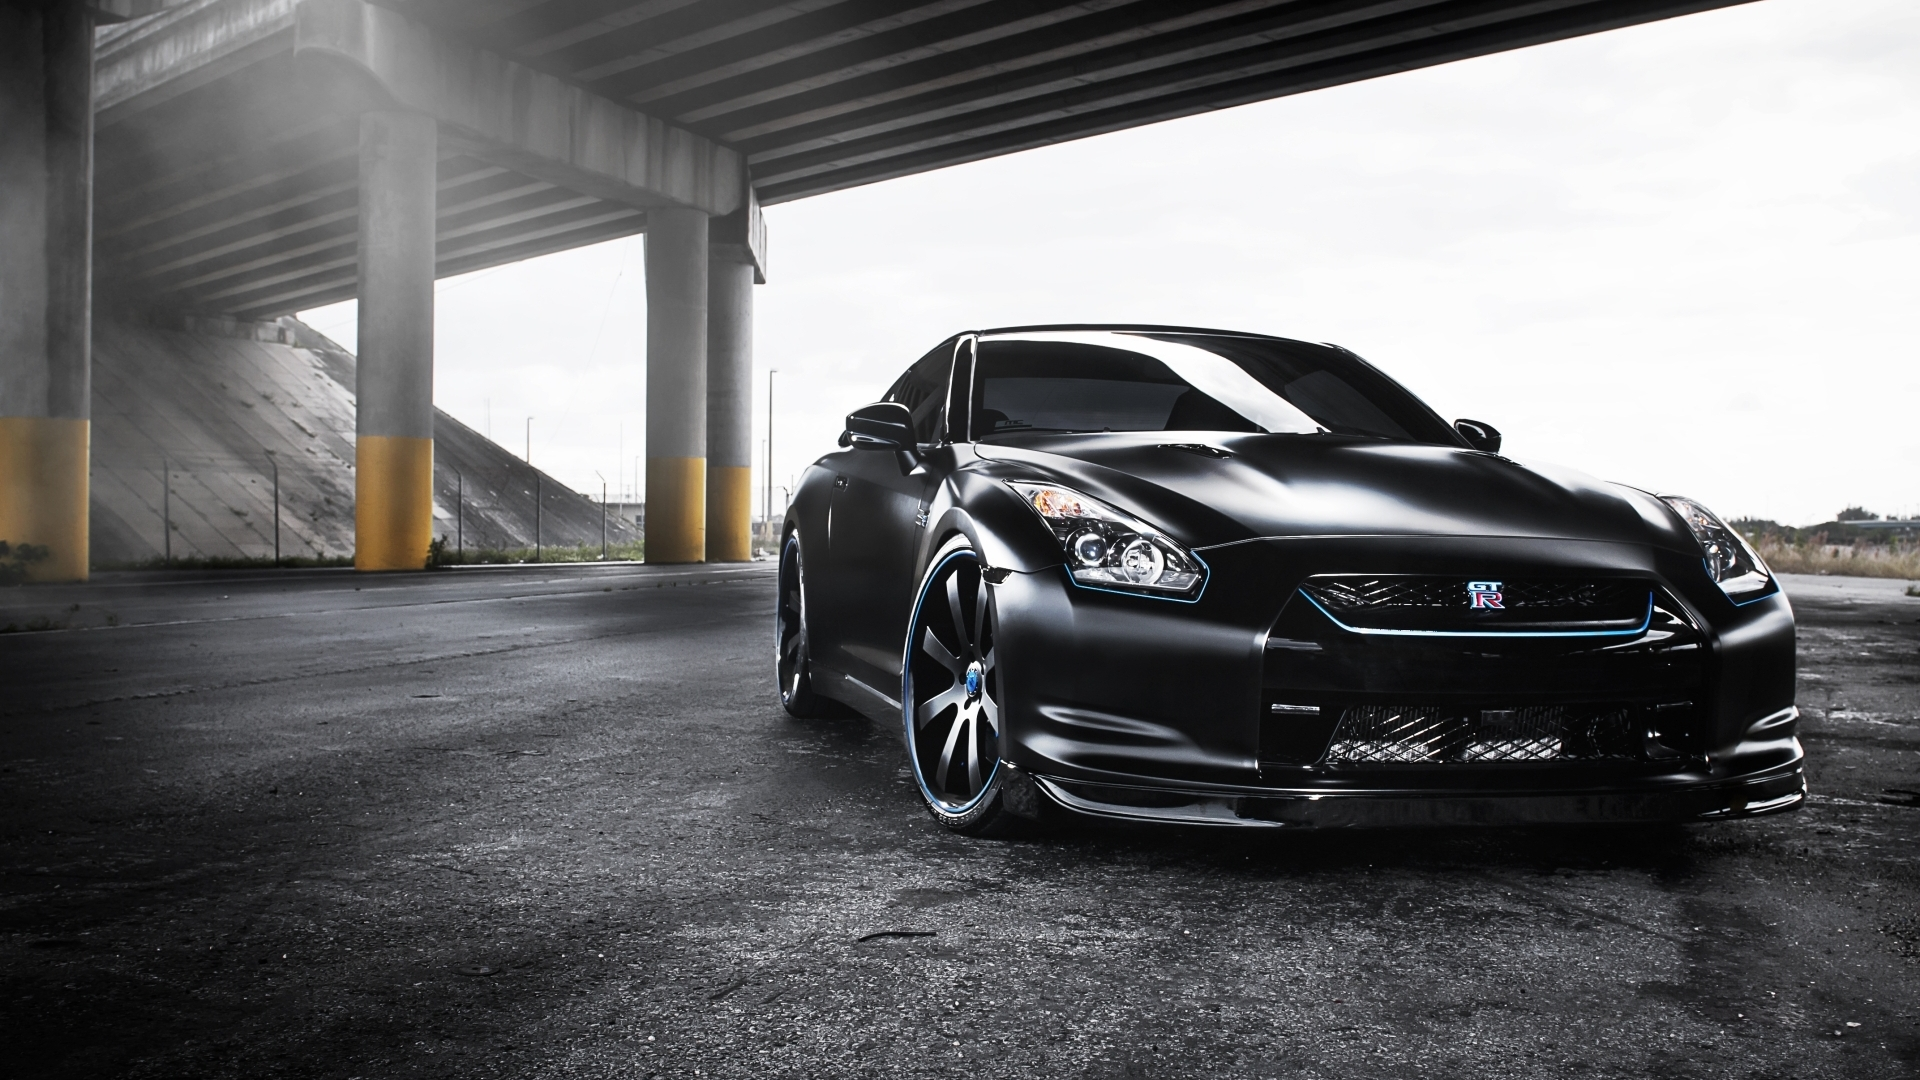 Nissan Gtr Wallpapers, Pictures, Images